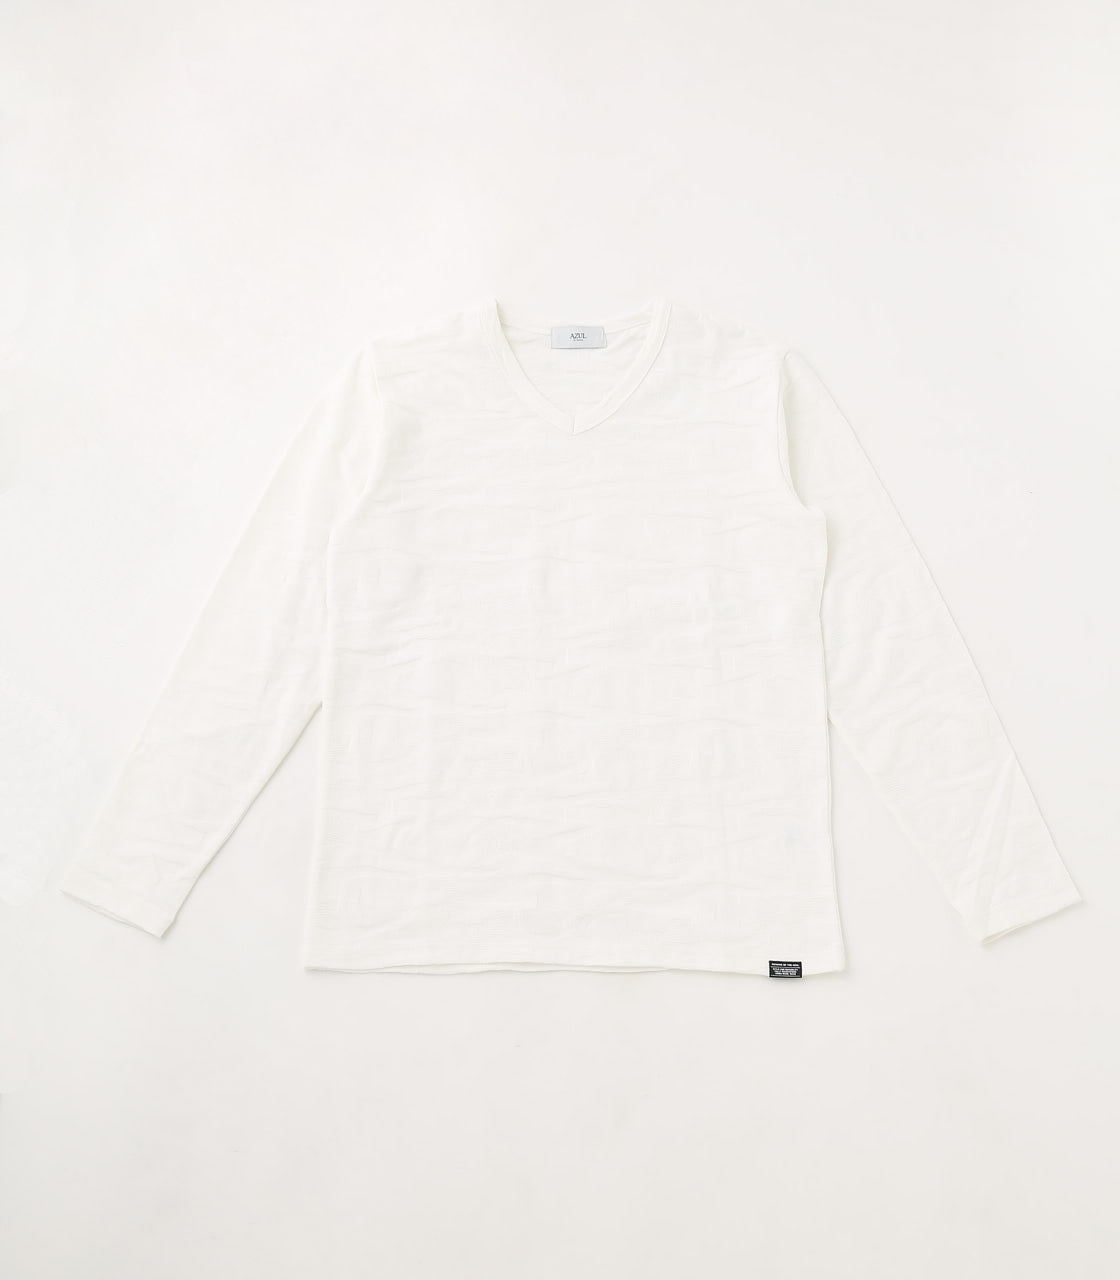 【AZUL BY MOUSSY】SHADOW CAMOUFLAGE LONG SLEEVE 詳細画像 WHT 1